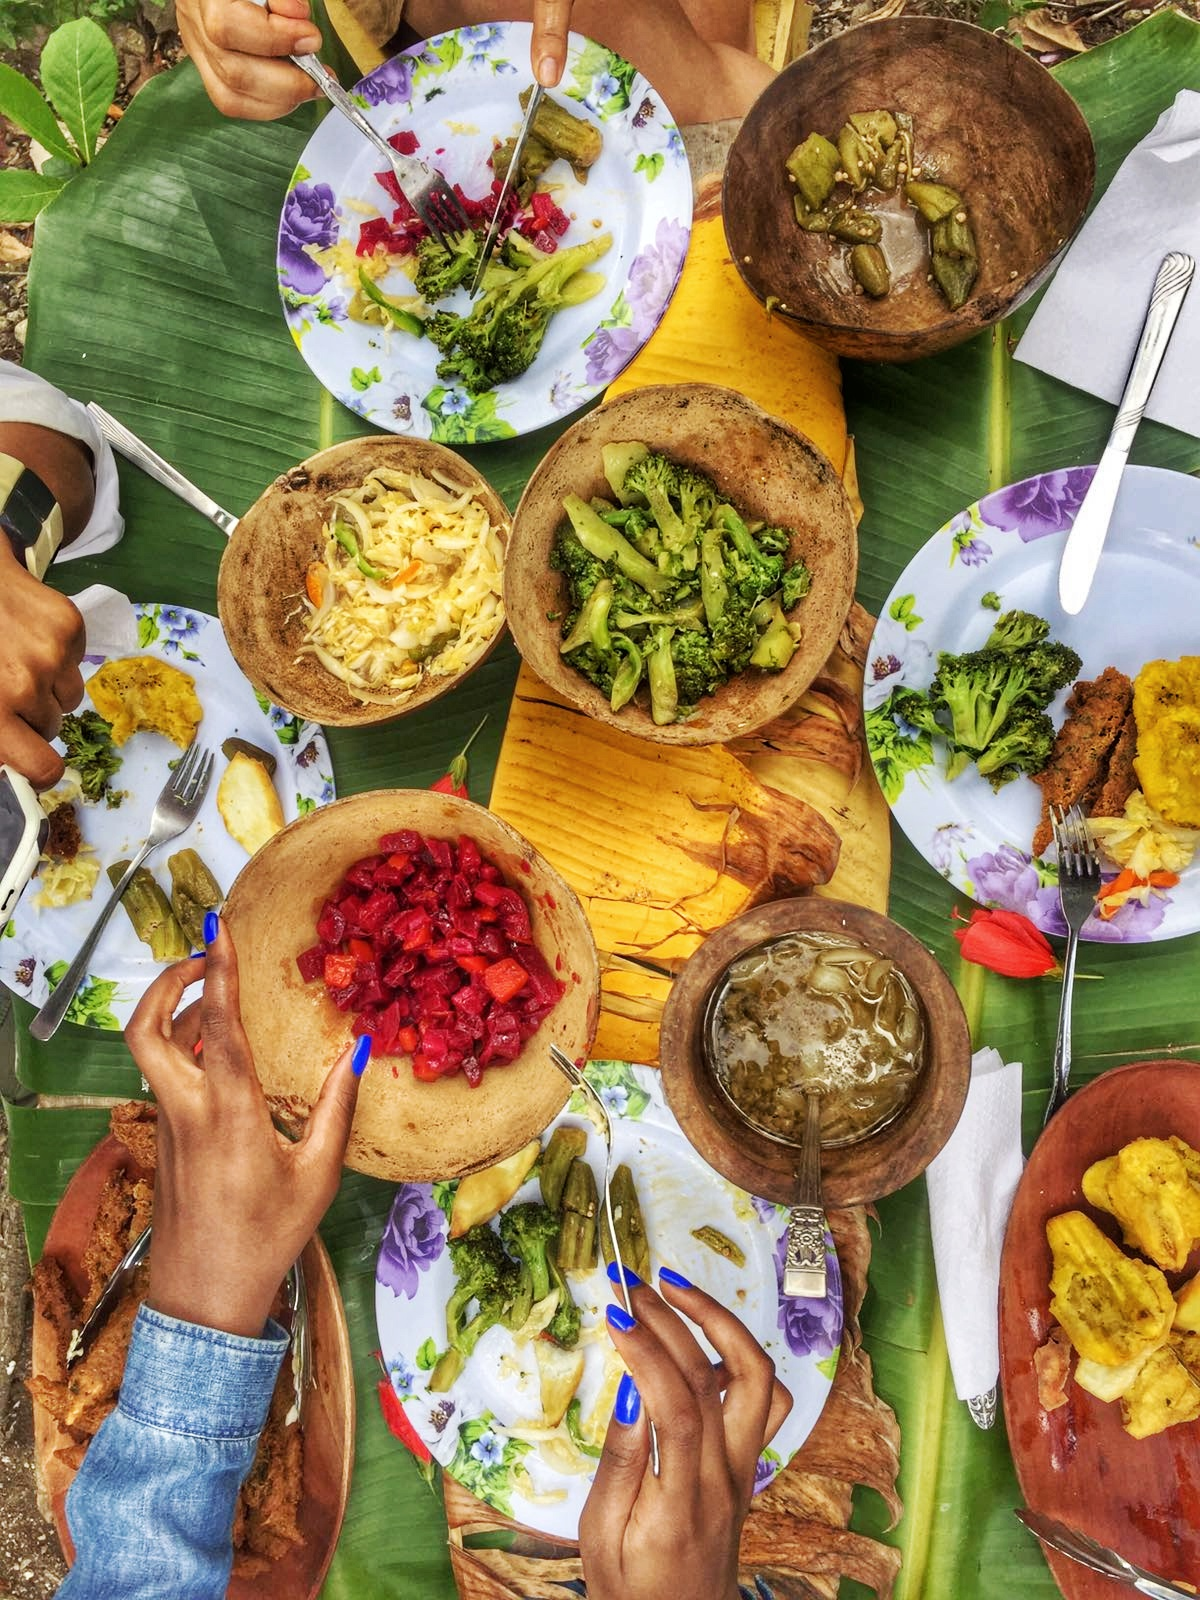 Cuisine Tours Experiencing Haitian Cuisine And Culture With Mennen M La Tours